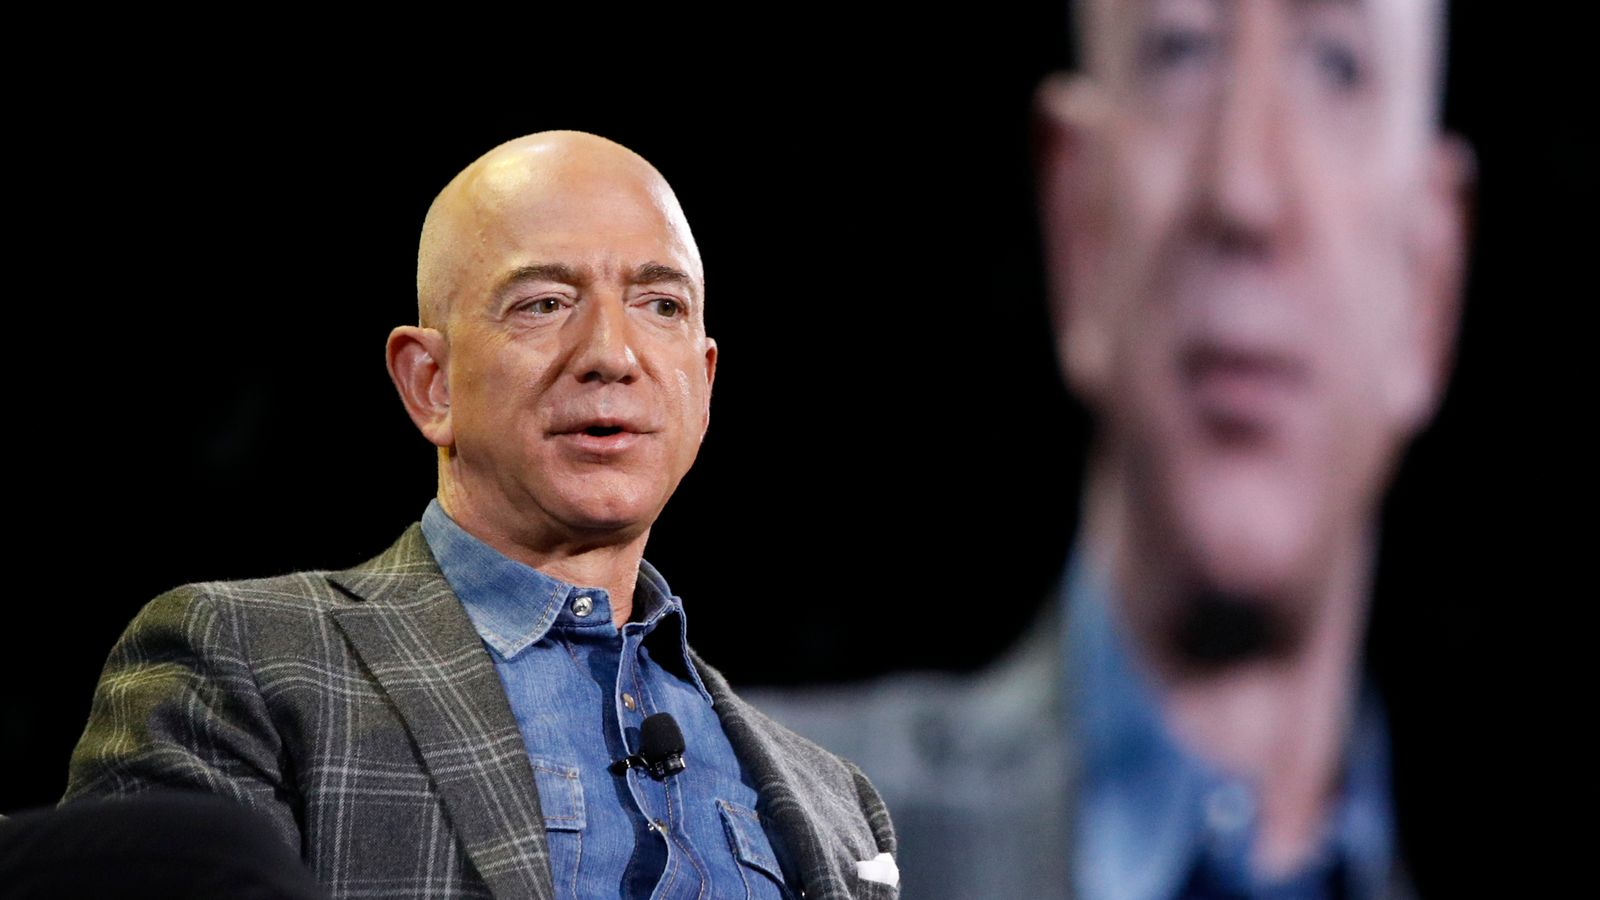 Amazon Chief Jeff Bezos To Travel Into Space Next Month For 'Adventure' With His Brother